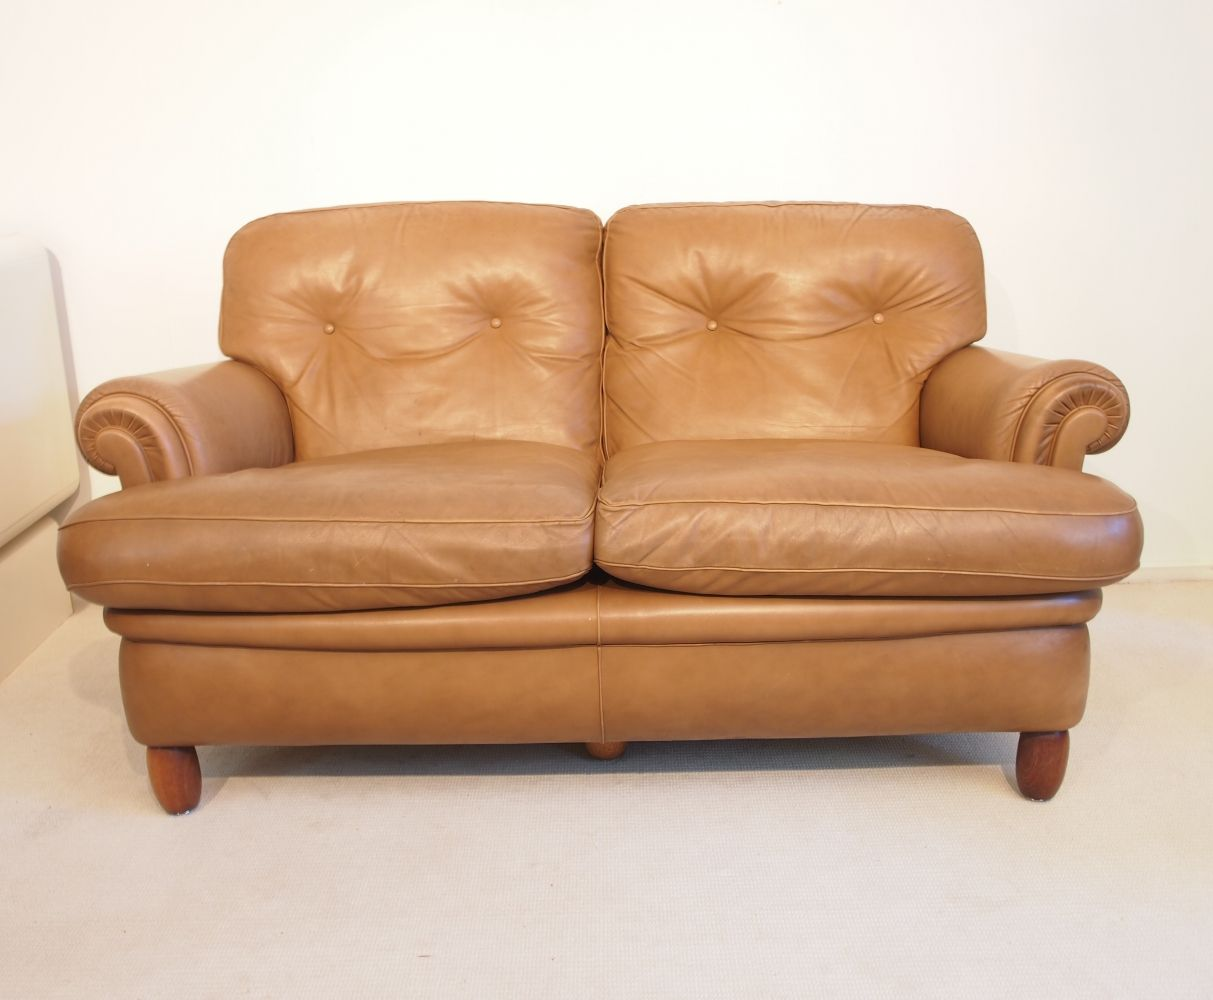 Pleasant For Sale Vintage Italian Design Leather Sofa By Poltrona Gmtry Best Dining Table And Chair Ideas Images Gmtryco